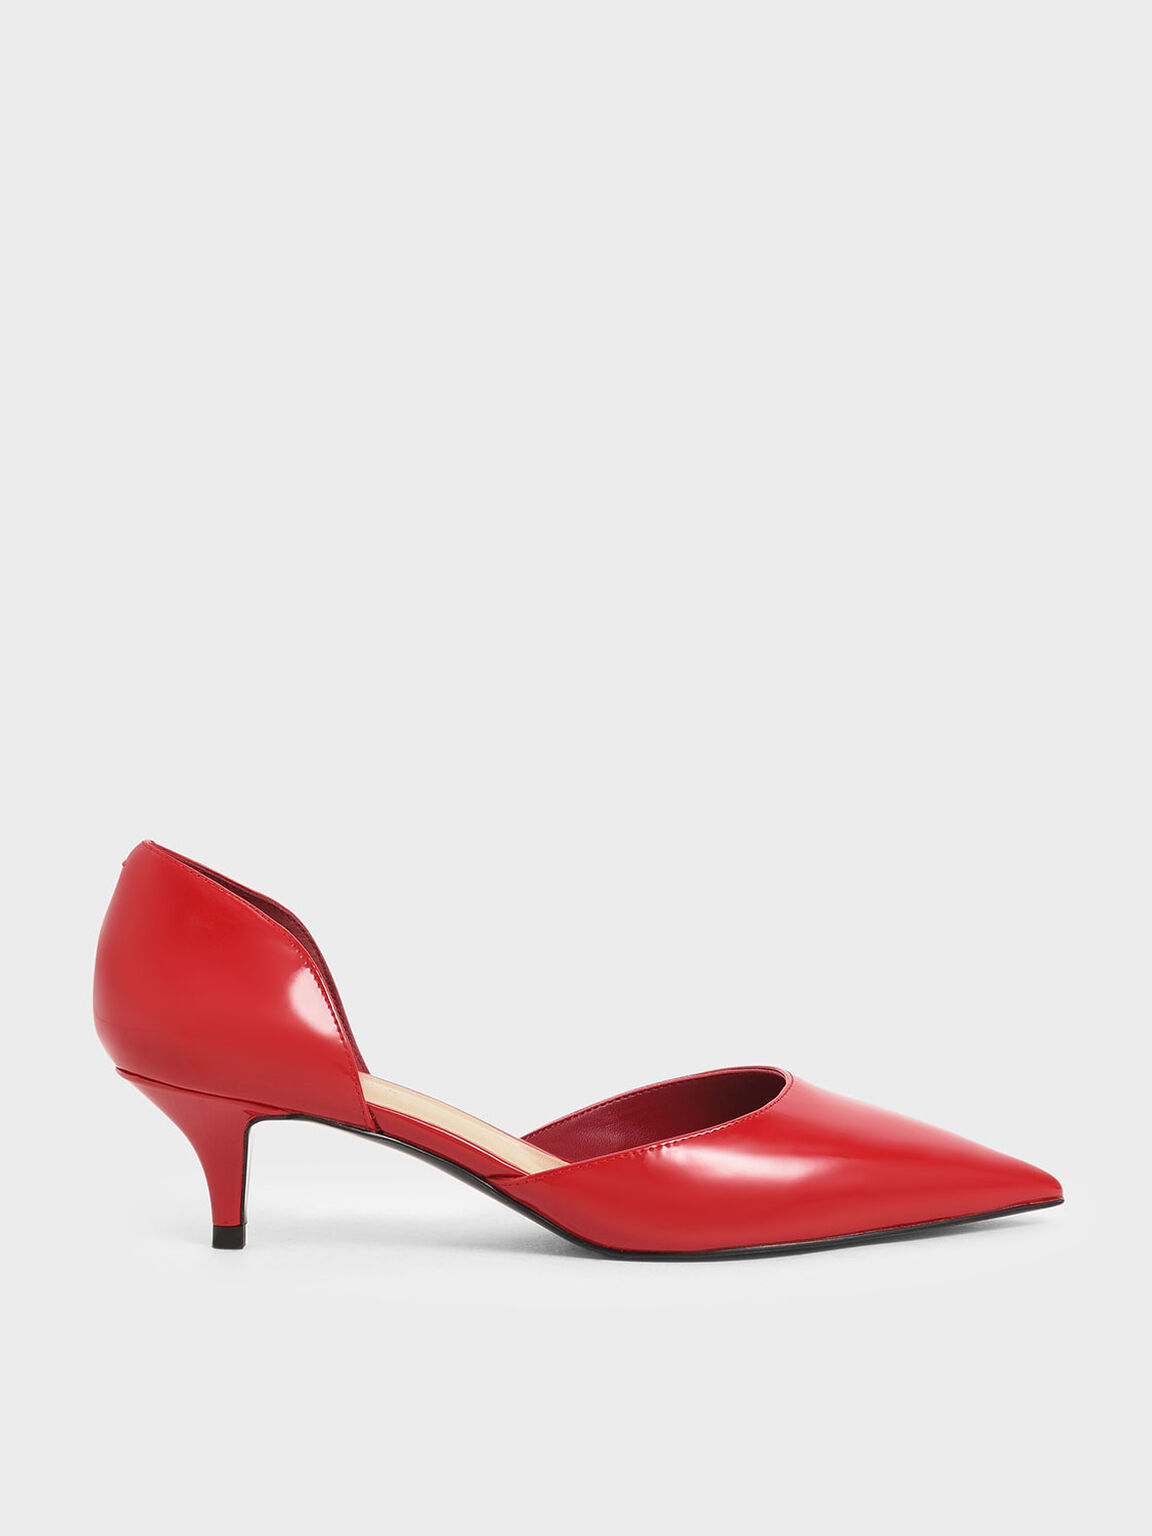 Patent D'Orsay Kitten Heel Pumps, Red, hi-res